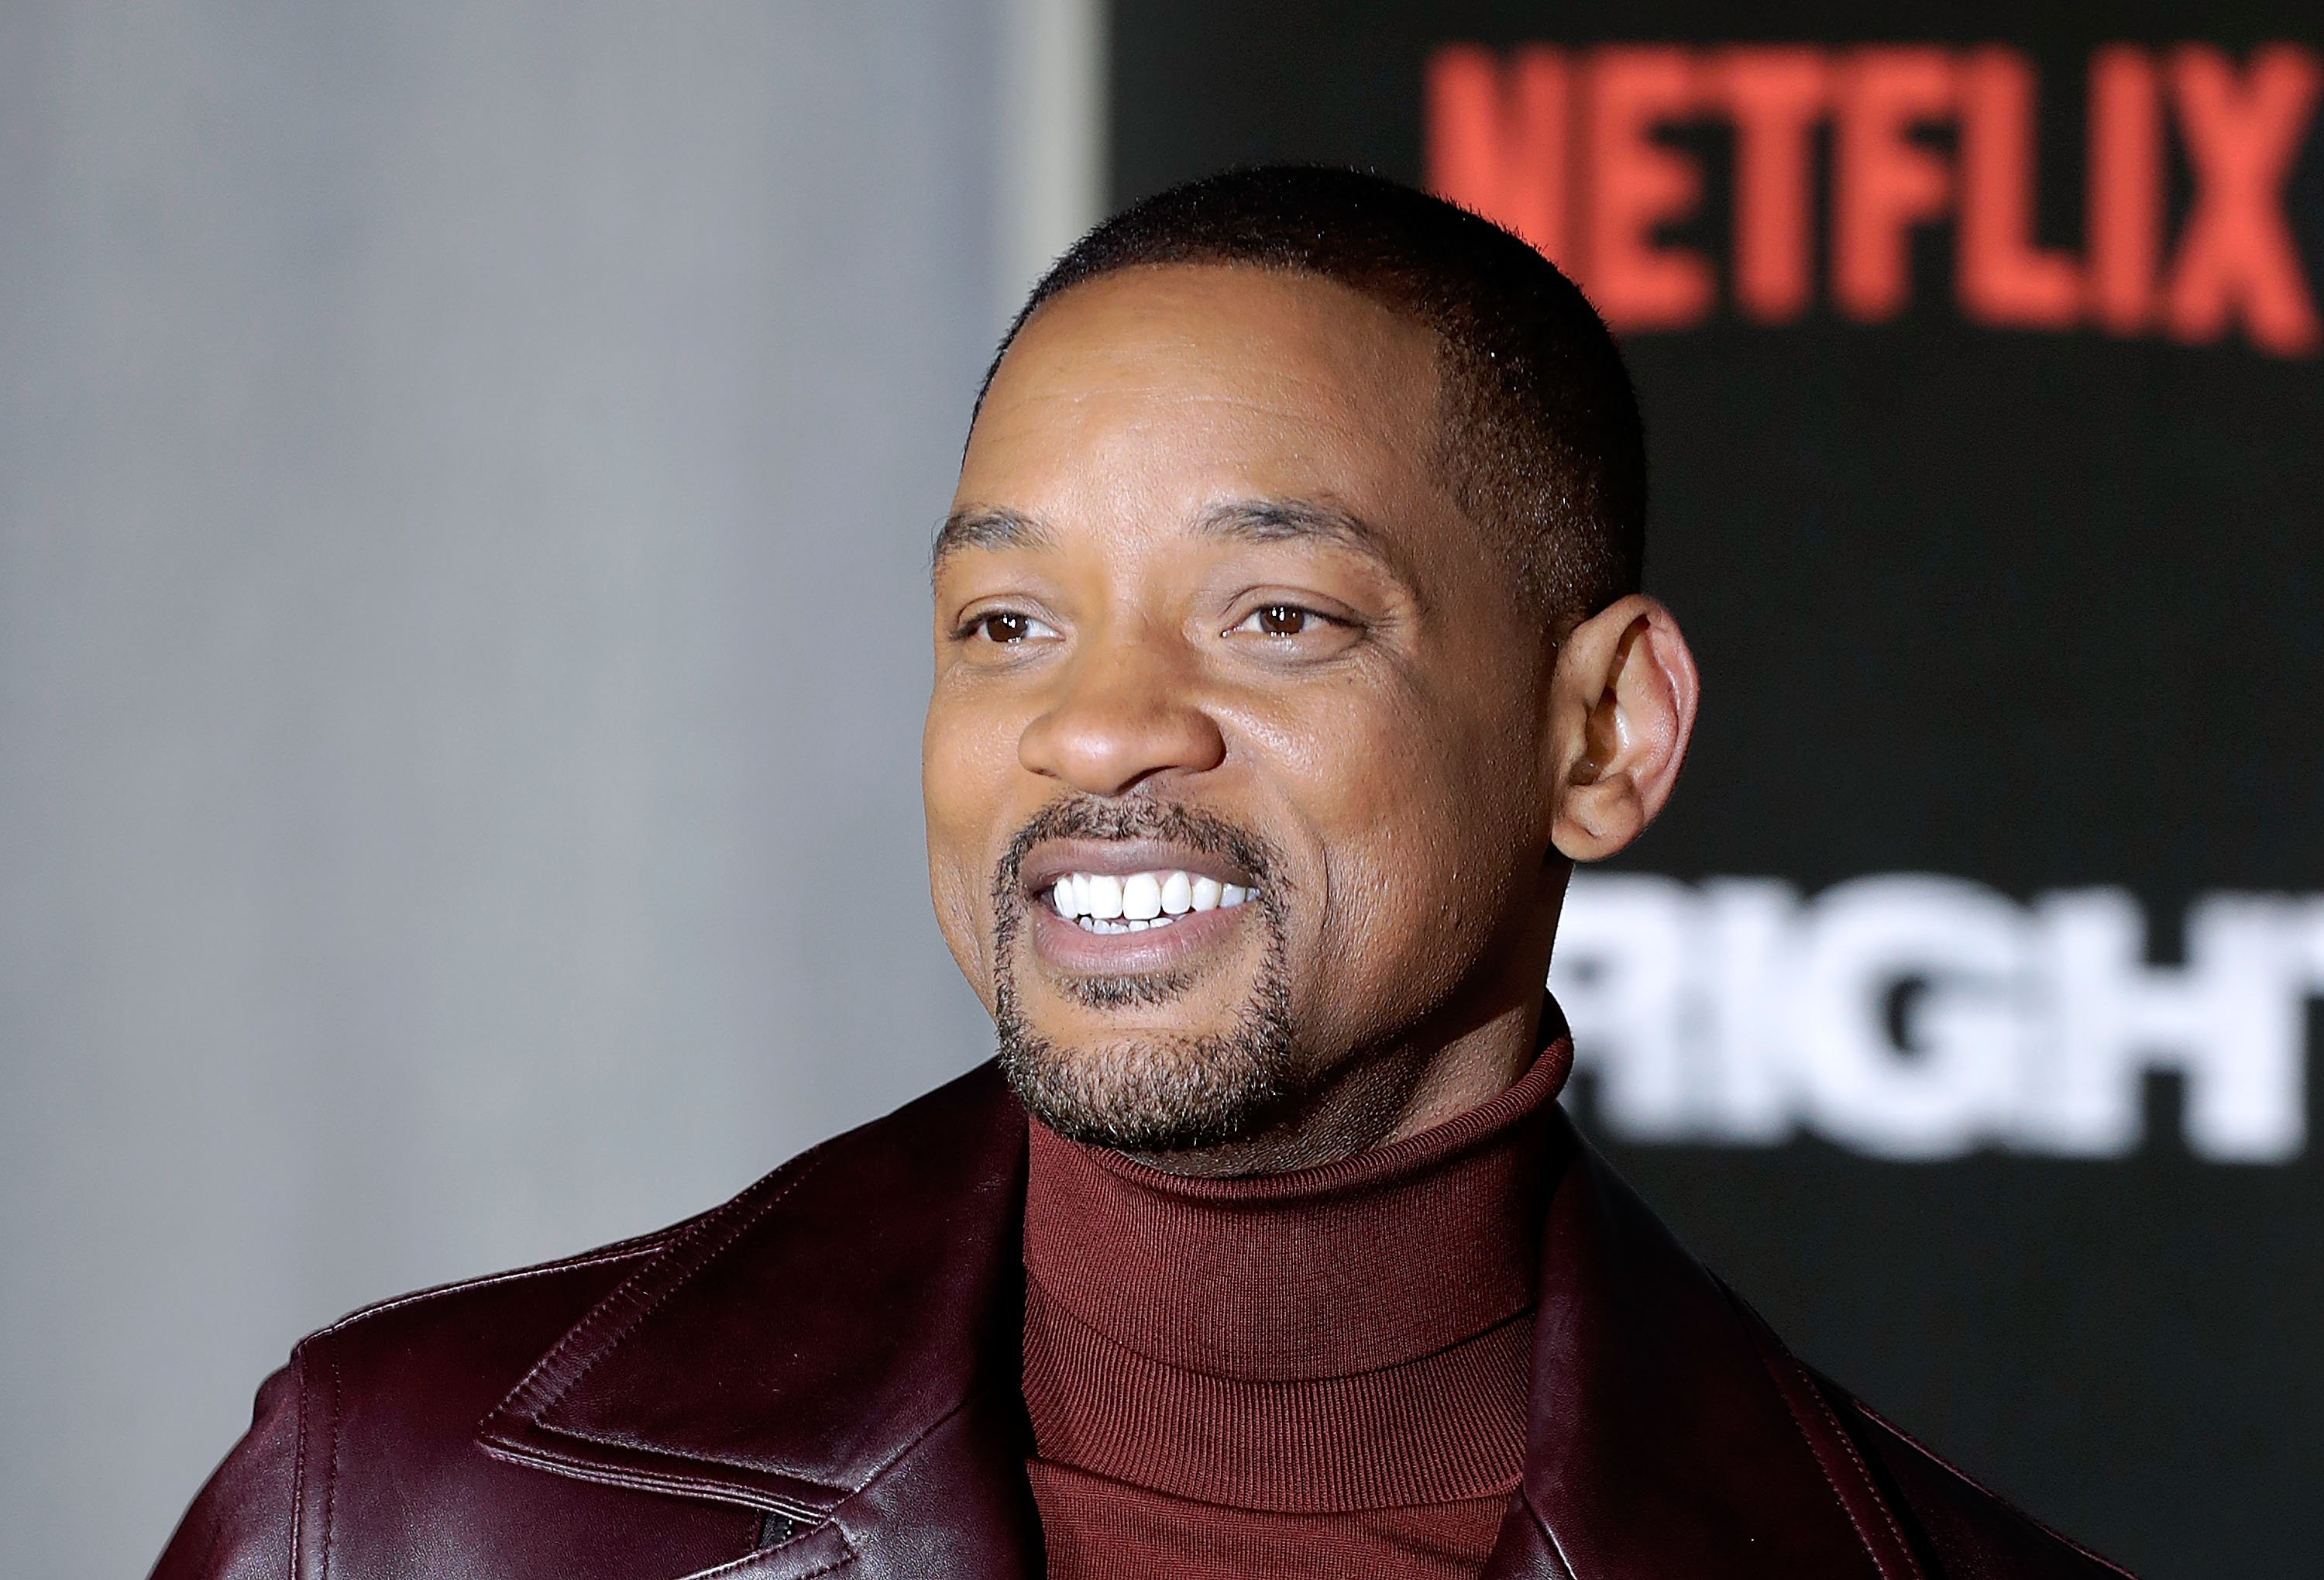 Will Smith attends the European Premeire of 'Bright' held at BFI Southbank on December 15, 2017 | Photo: GettyImages